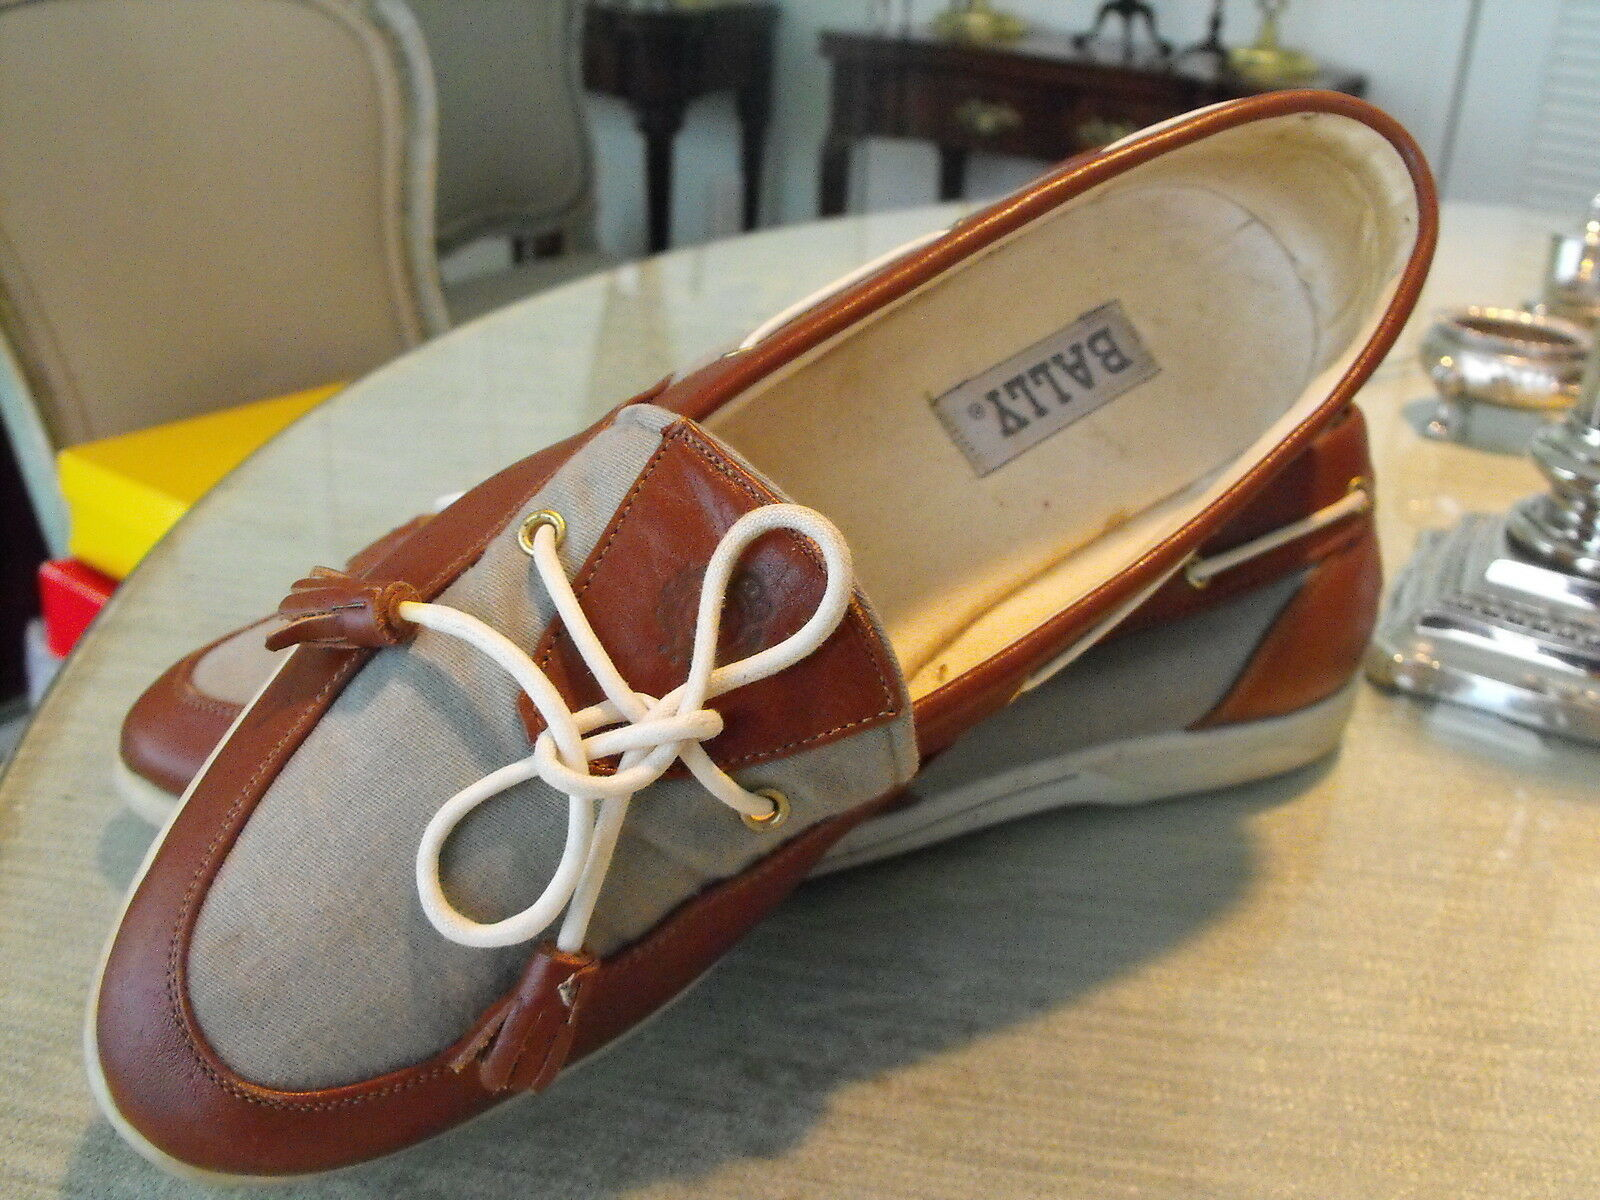 BALLY Leather Gray Blue Canvas & Mahogeny Brown Leather BALLY Boat Shoes w/String Bows  8.5B 8259cb